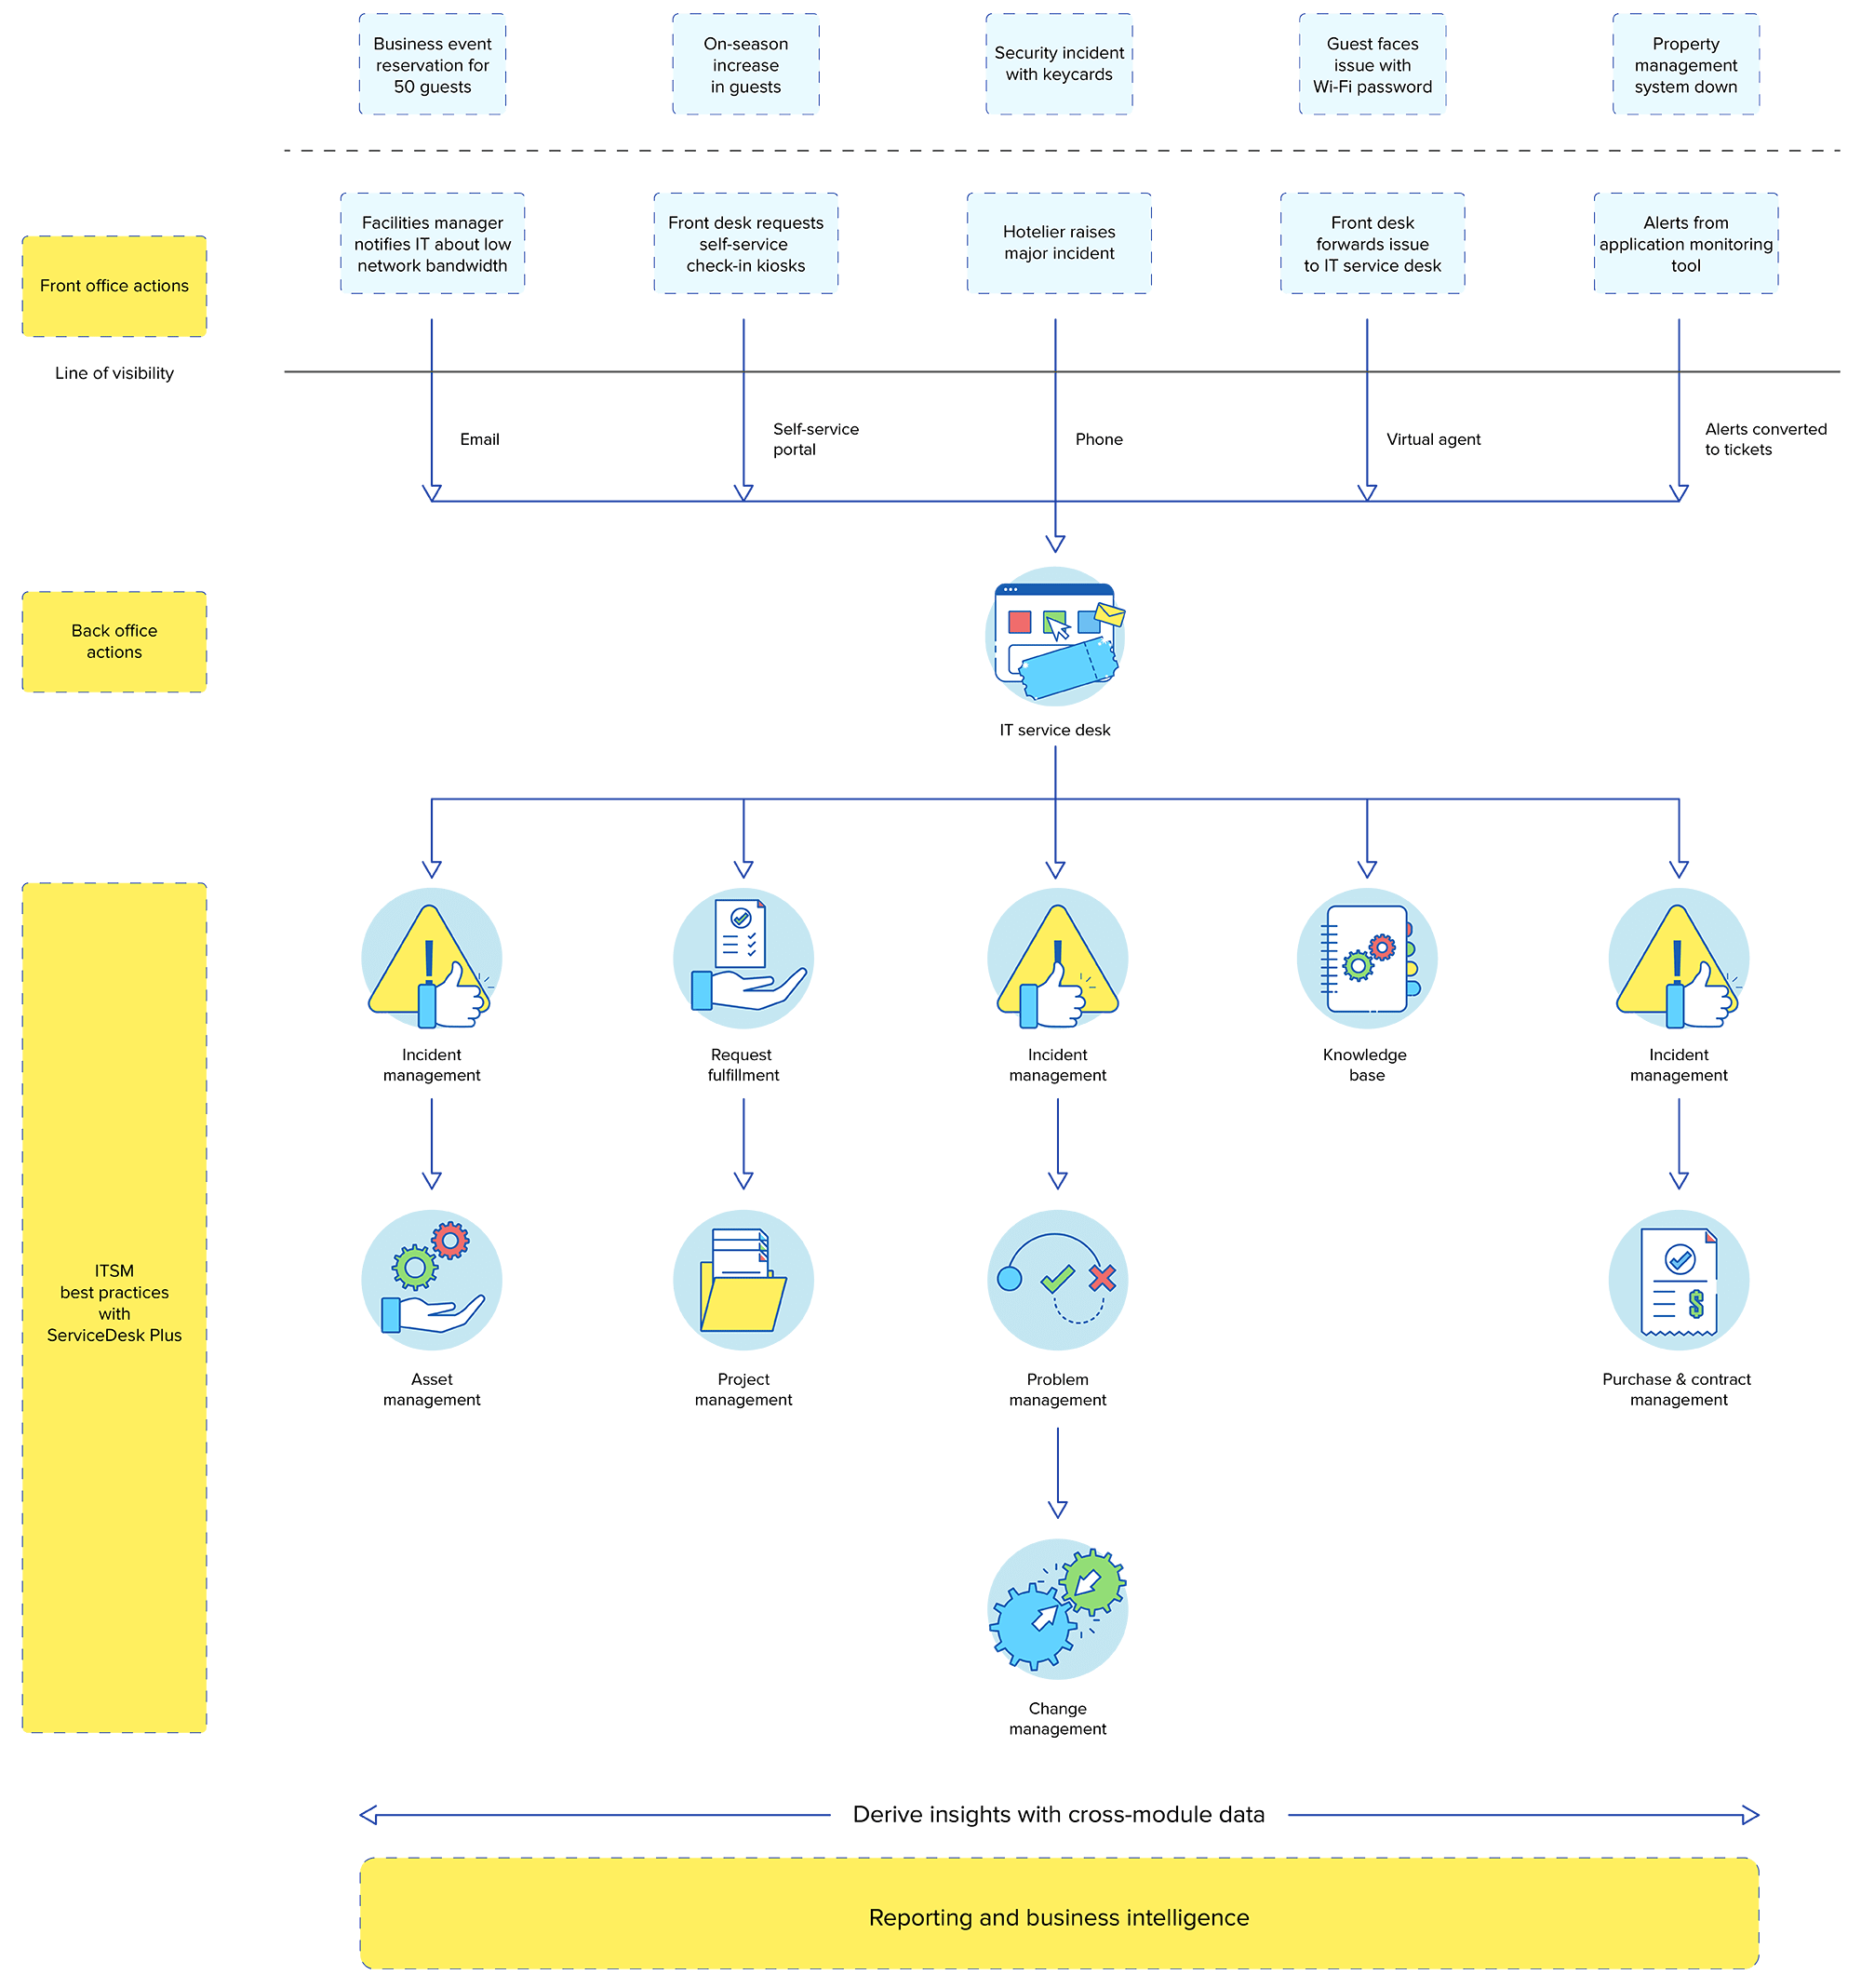 Ticketing system workflow diagram for hospitality